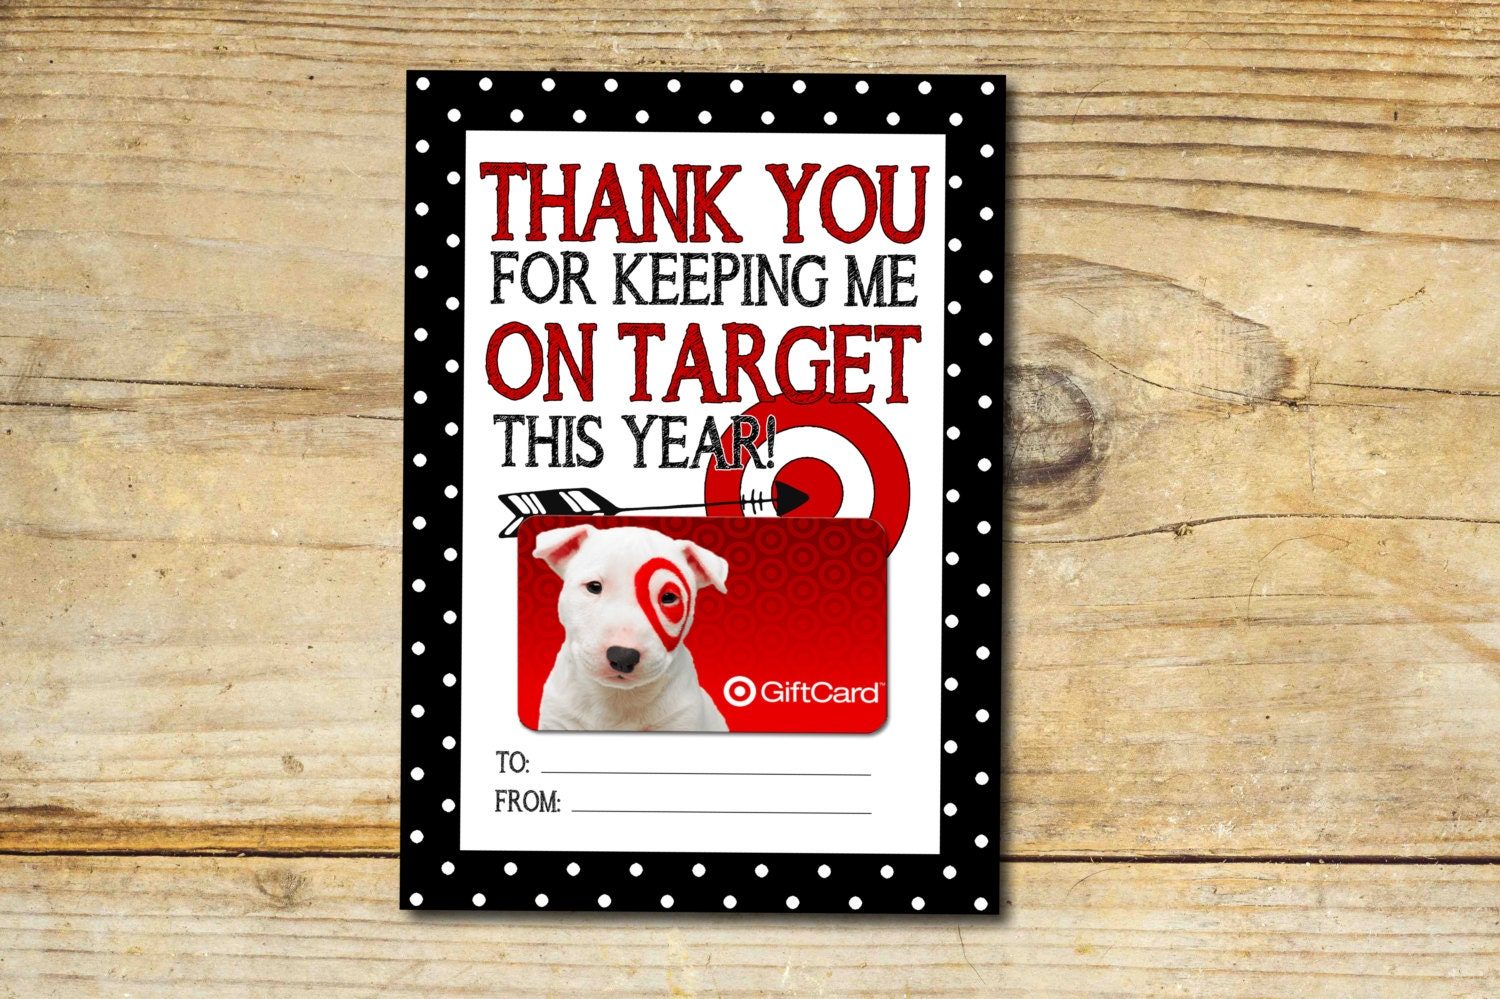 Shopkins coloring book target - Keeping Me On Target Thank You Gift Card Holder Printable Instant Download Teacher Appreciation End Of School Gift